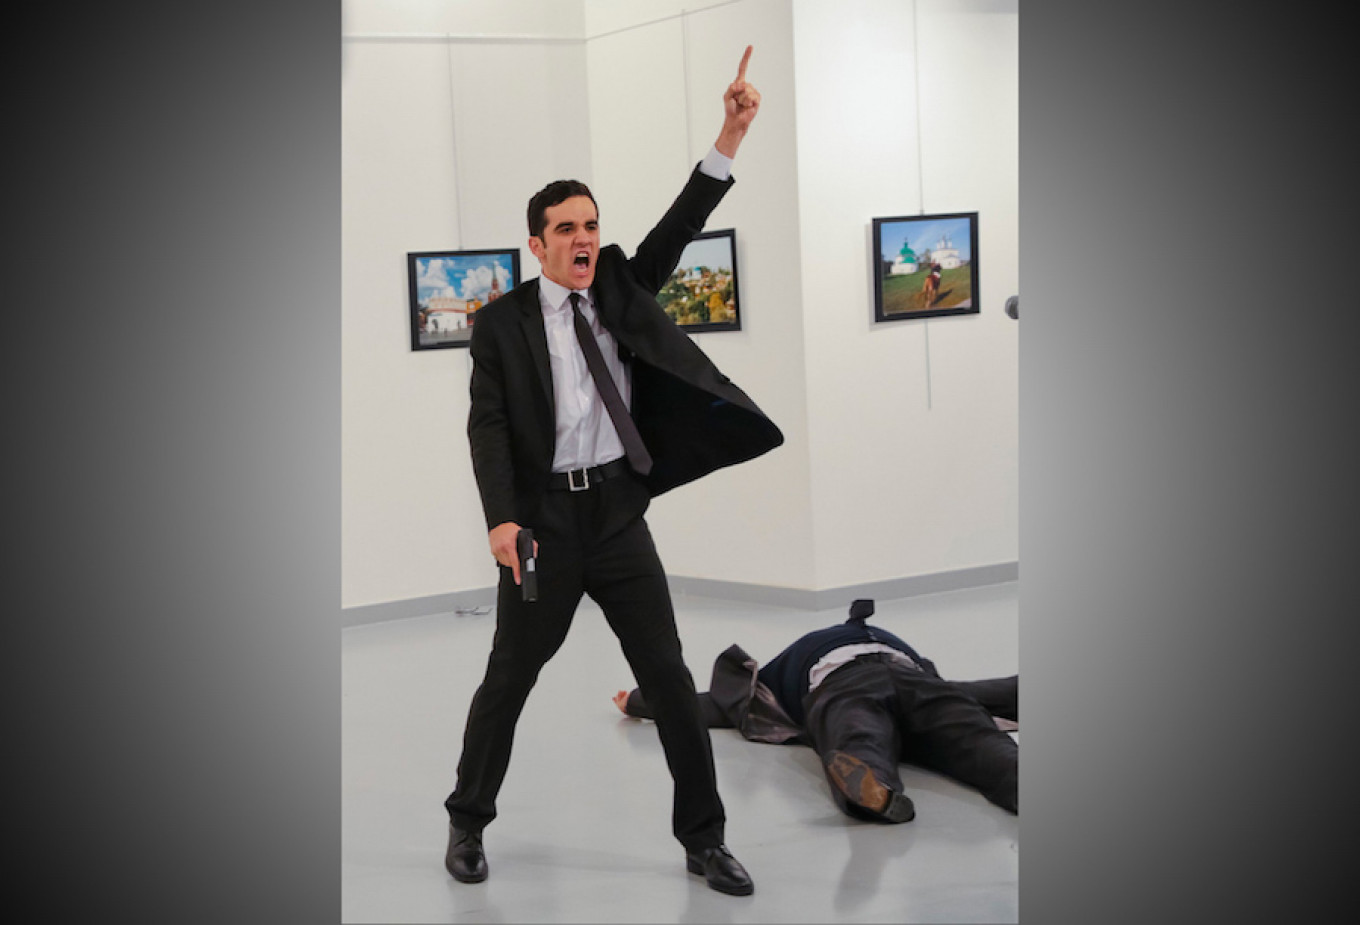 In this Dec. 19, 2016 file photo, Mevlut Mert Altintas shouts after shooting Andrei Karlov at an art gallery in Ankara, Turkey.				 				Burhan Ozbilici / AP